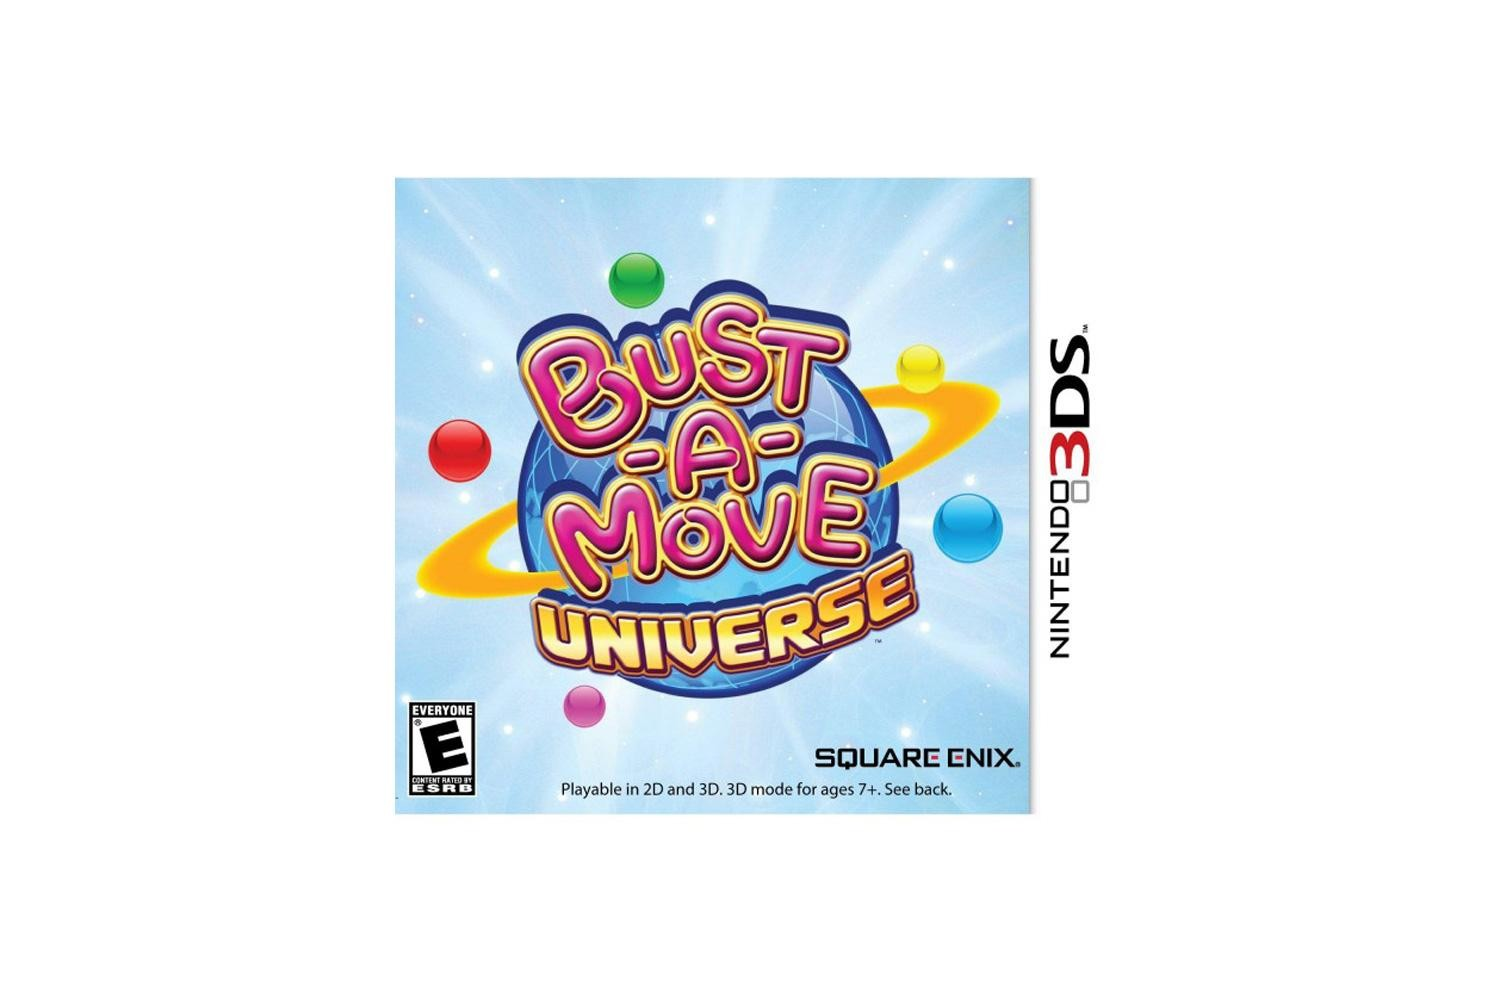 Bust-a-move-universe-3DS-cover-art